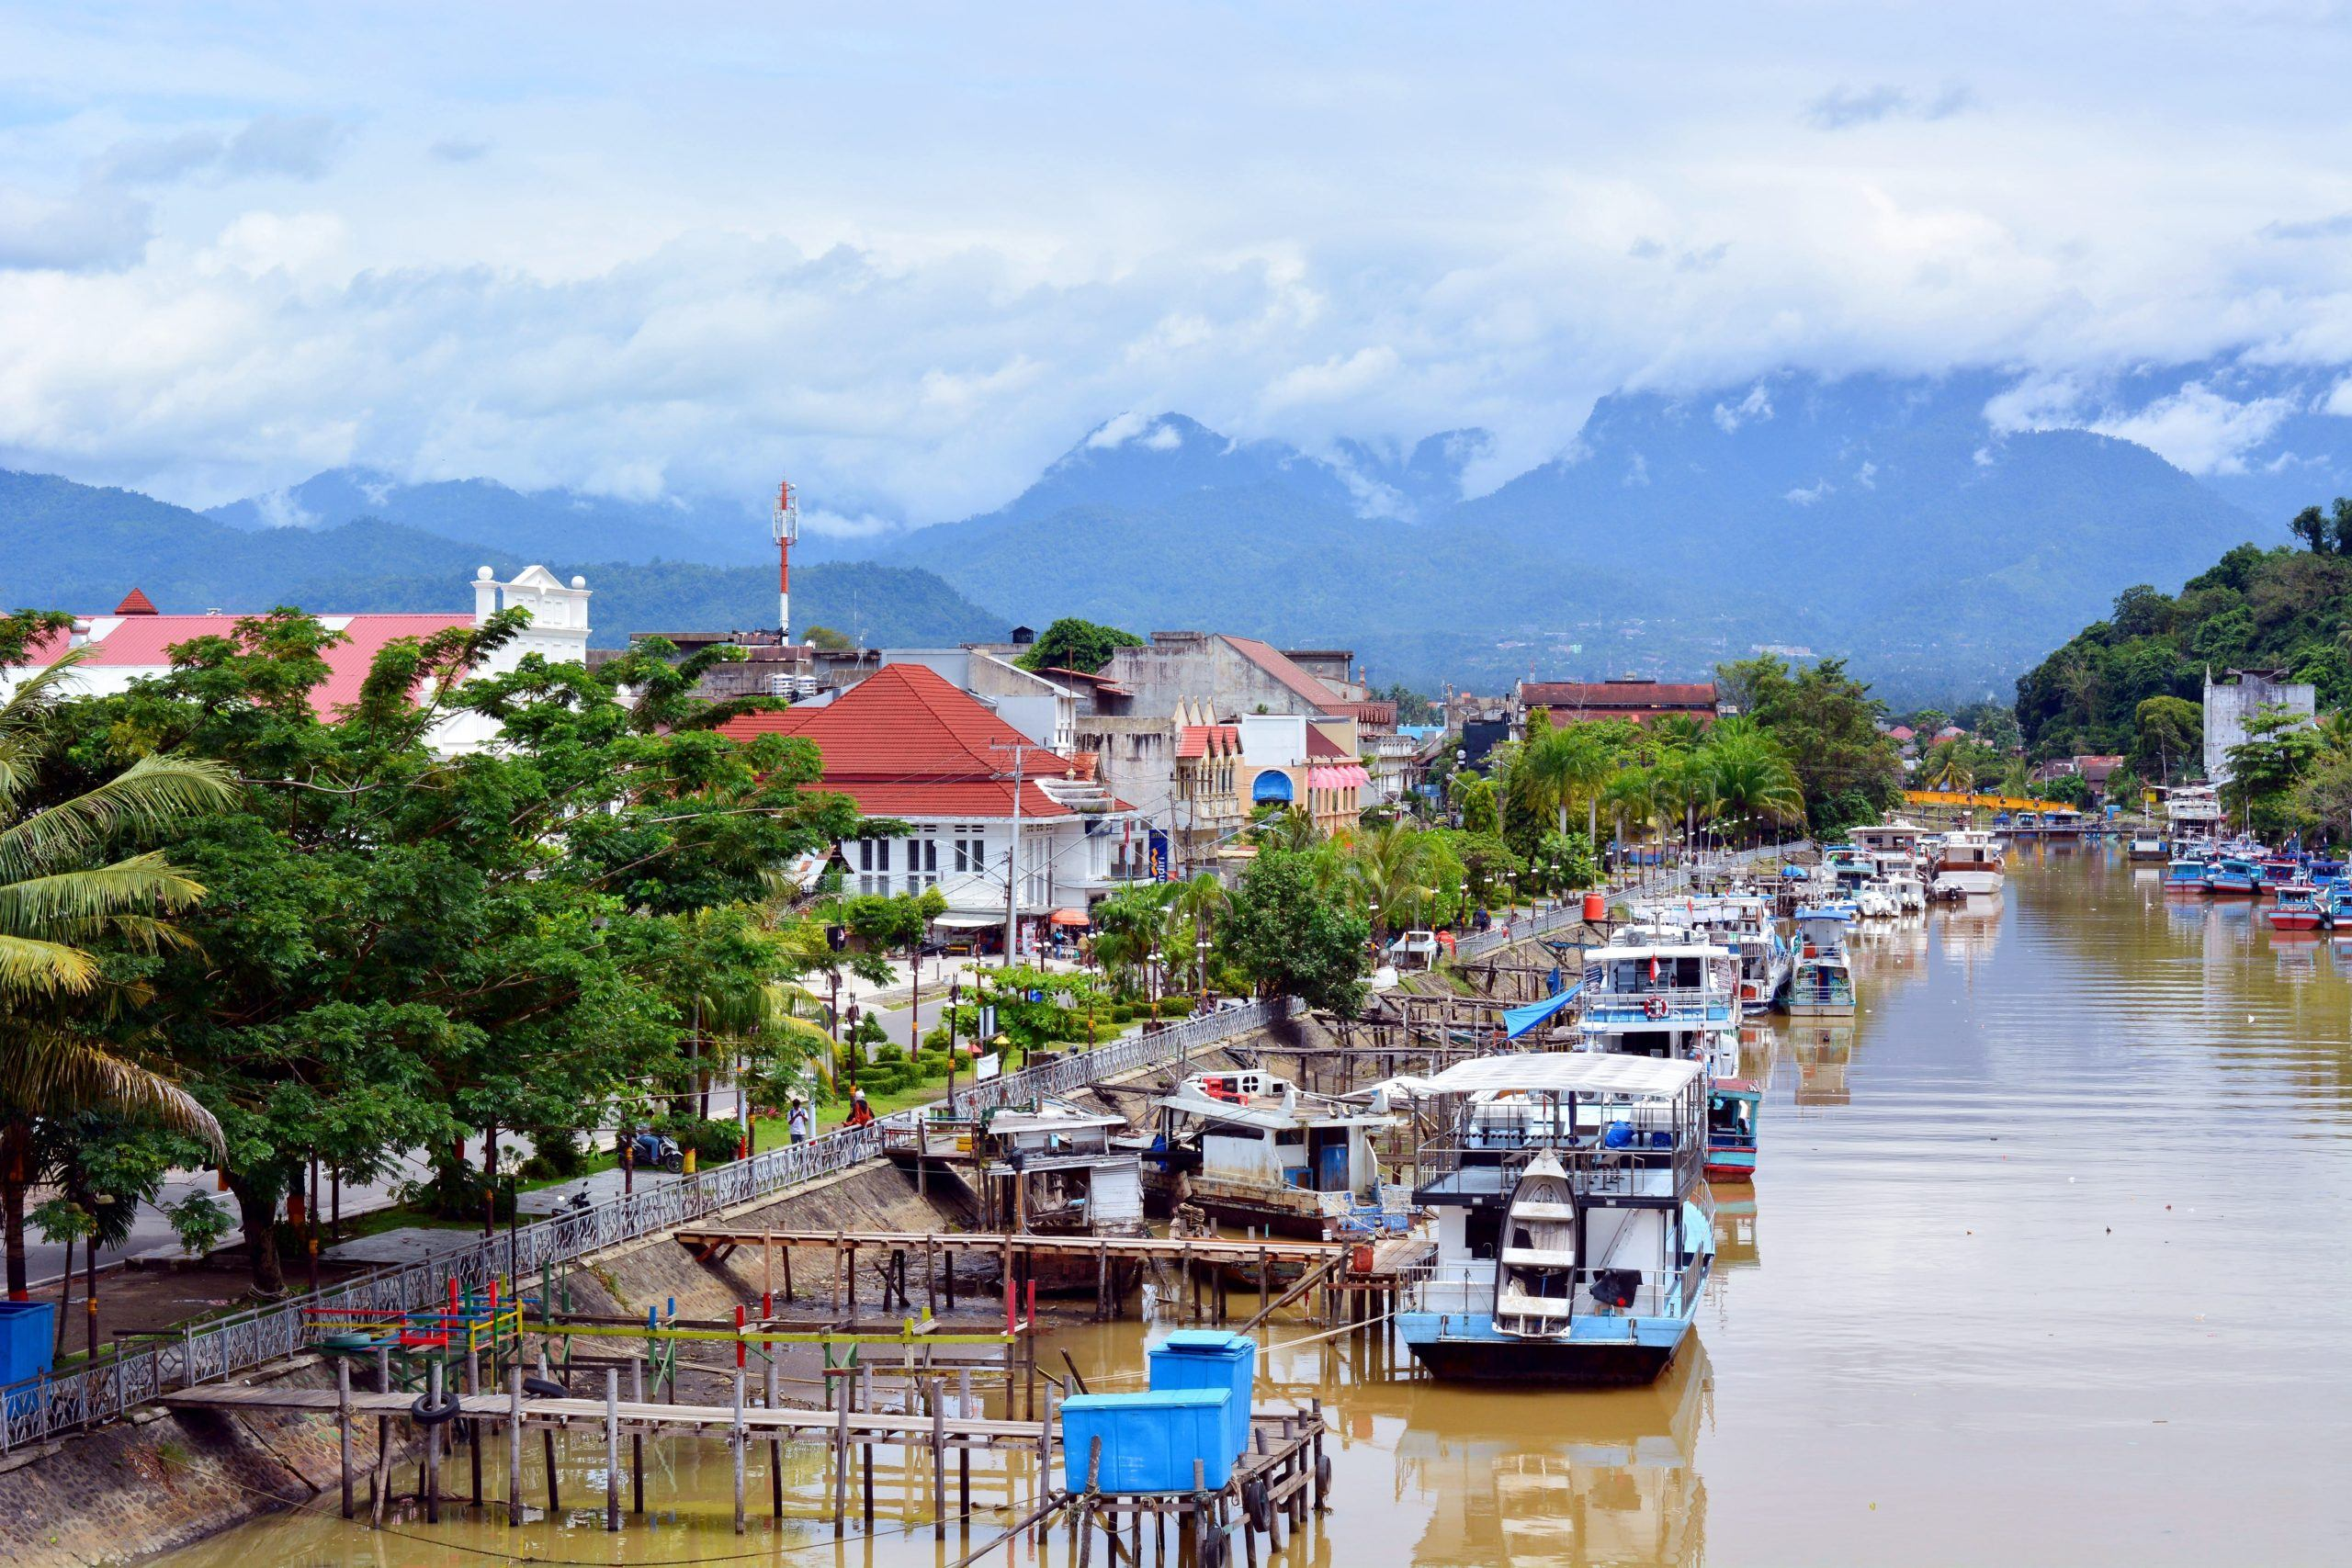 A view of a Sumatran riverside village against a background of cloudy